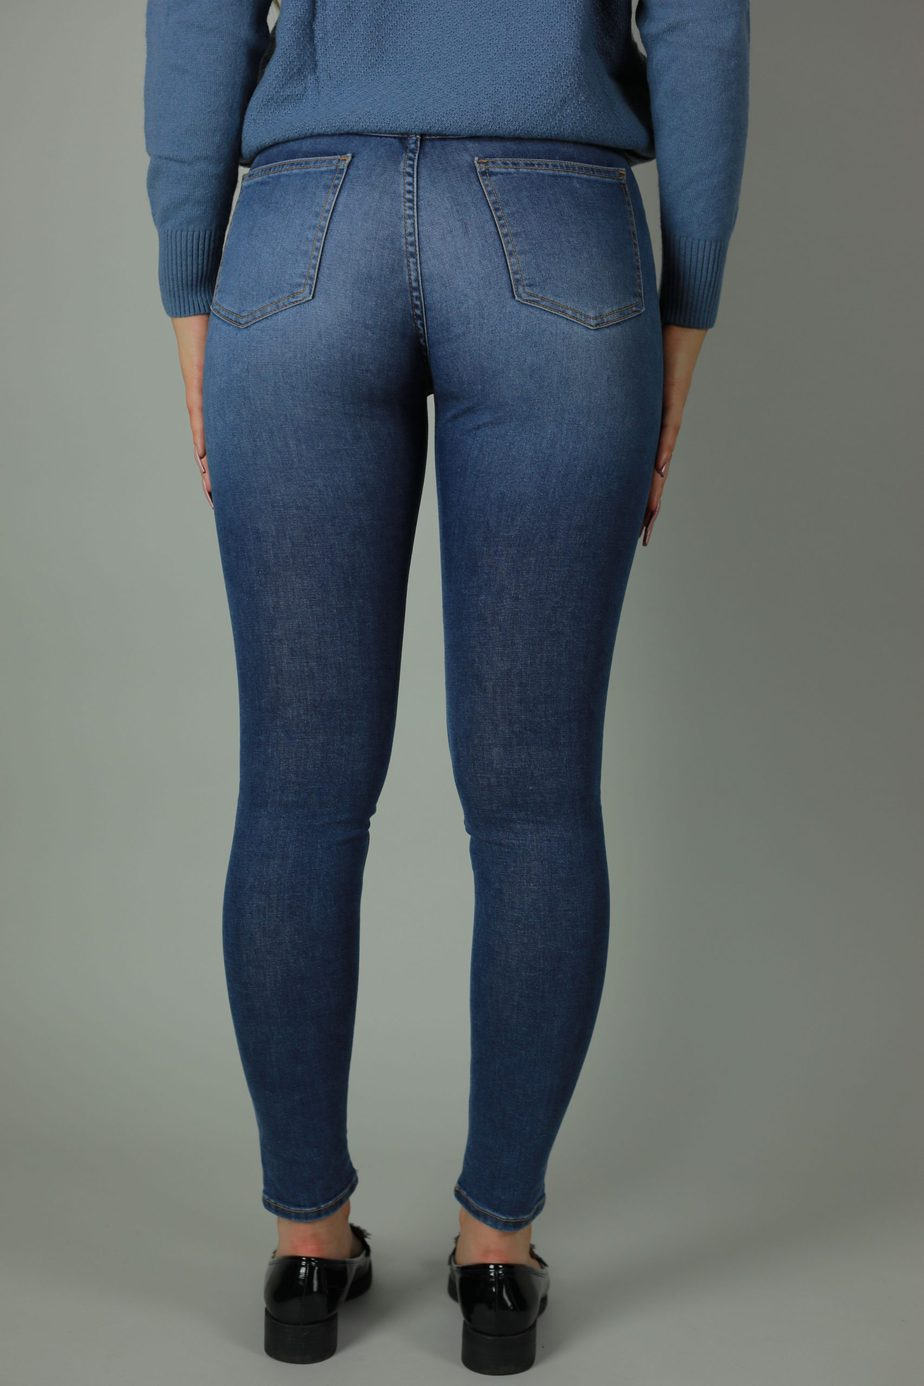 Our High waist Kaila collection are 98% cotton, 2% lycra jeans. Designed with quality in mind for the perfect fit and timeless style the Kaila Vienna is the perfect addition to your wardrobe year through year. Back view.